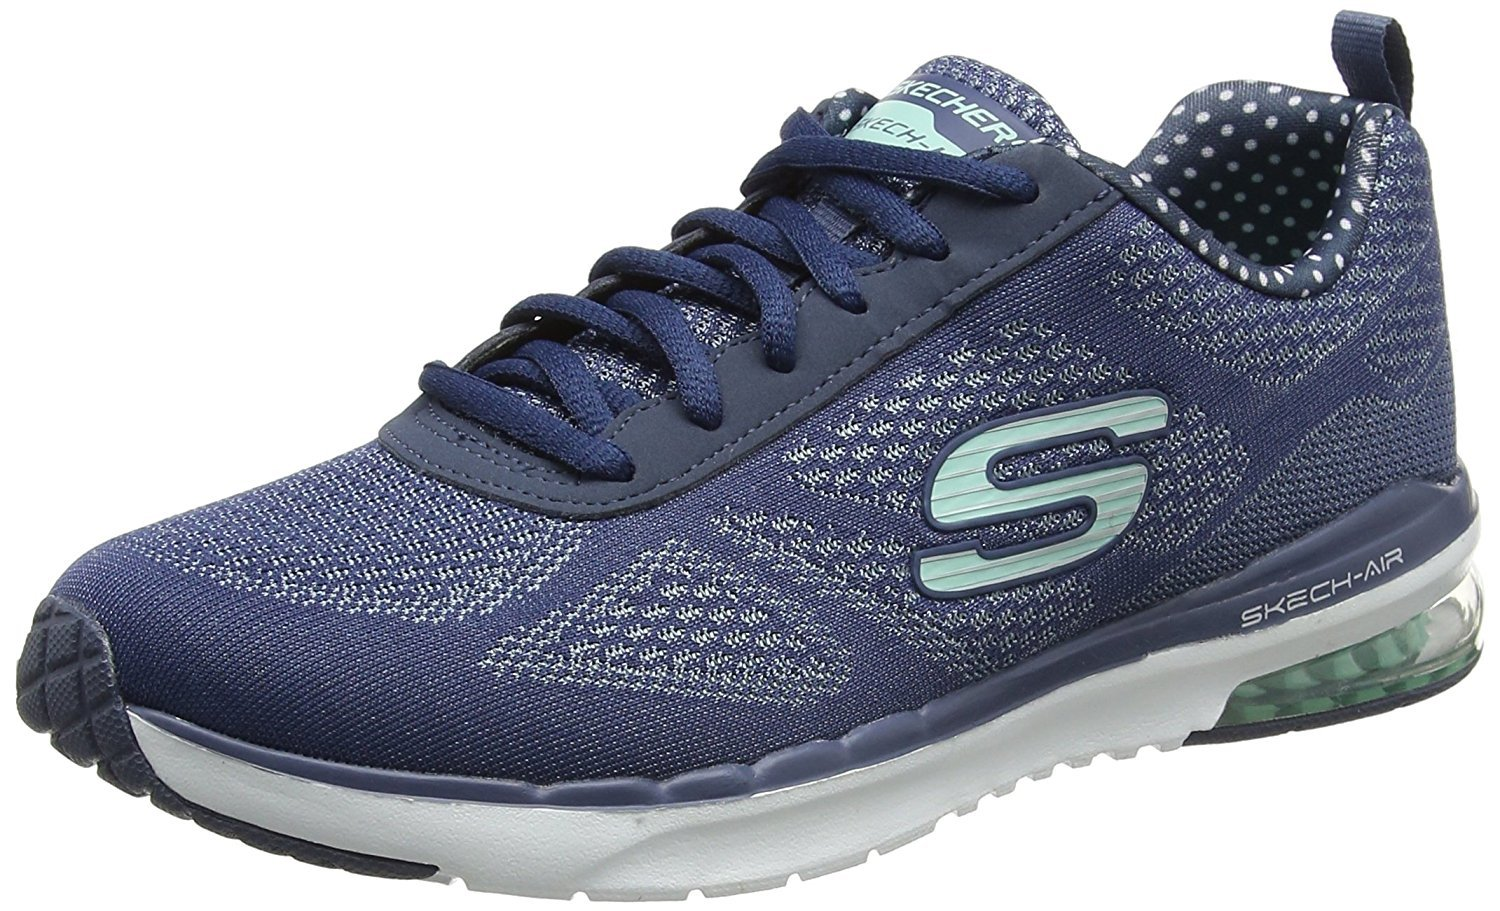 31809f7b0b73 Galleon - Skechers Womens Skech-Air Infinity Navy Aqua Cross Trainer - 9.5